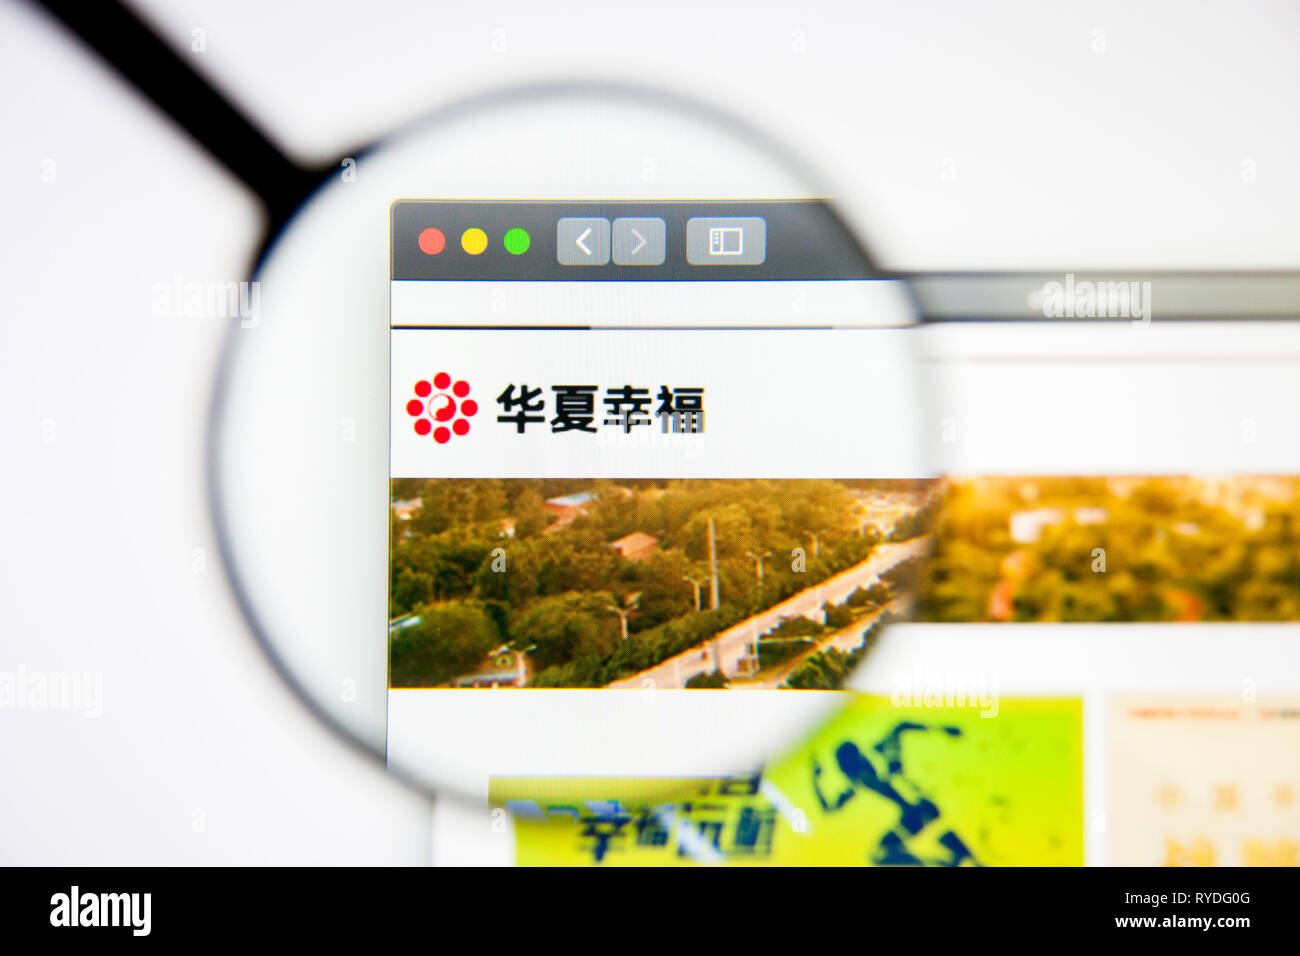 Los Angeles, California, USA - 5 March 2019: China Fortune Land Development website homepage. China Fortune Land Development logo visible on display - Stock Image